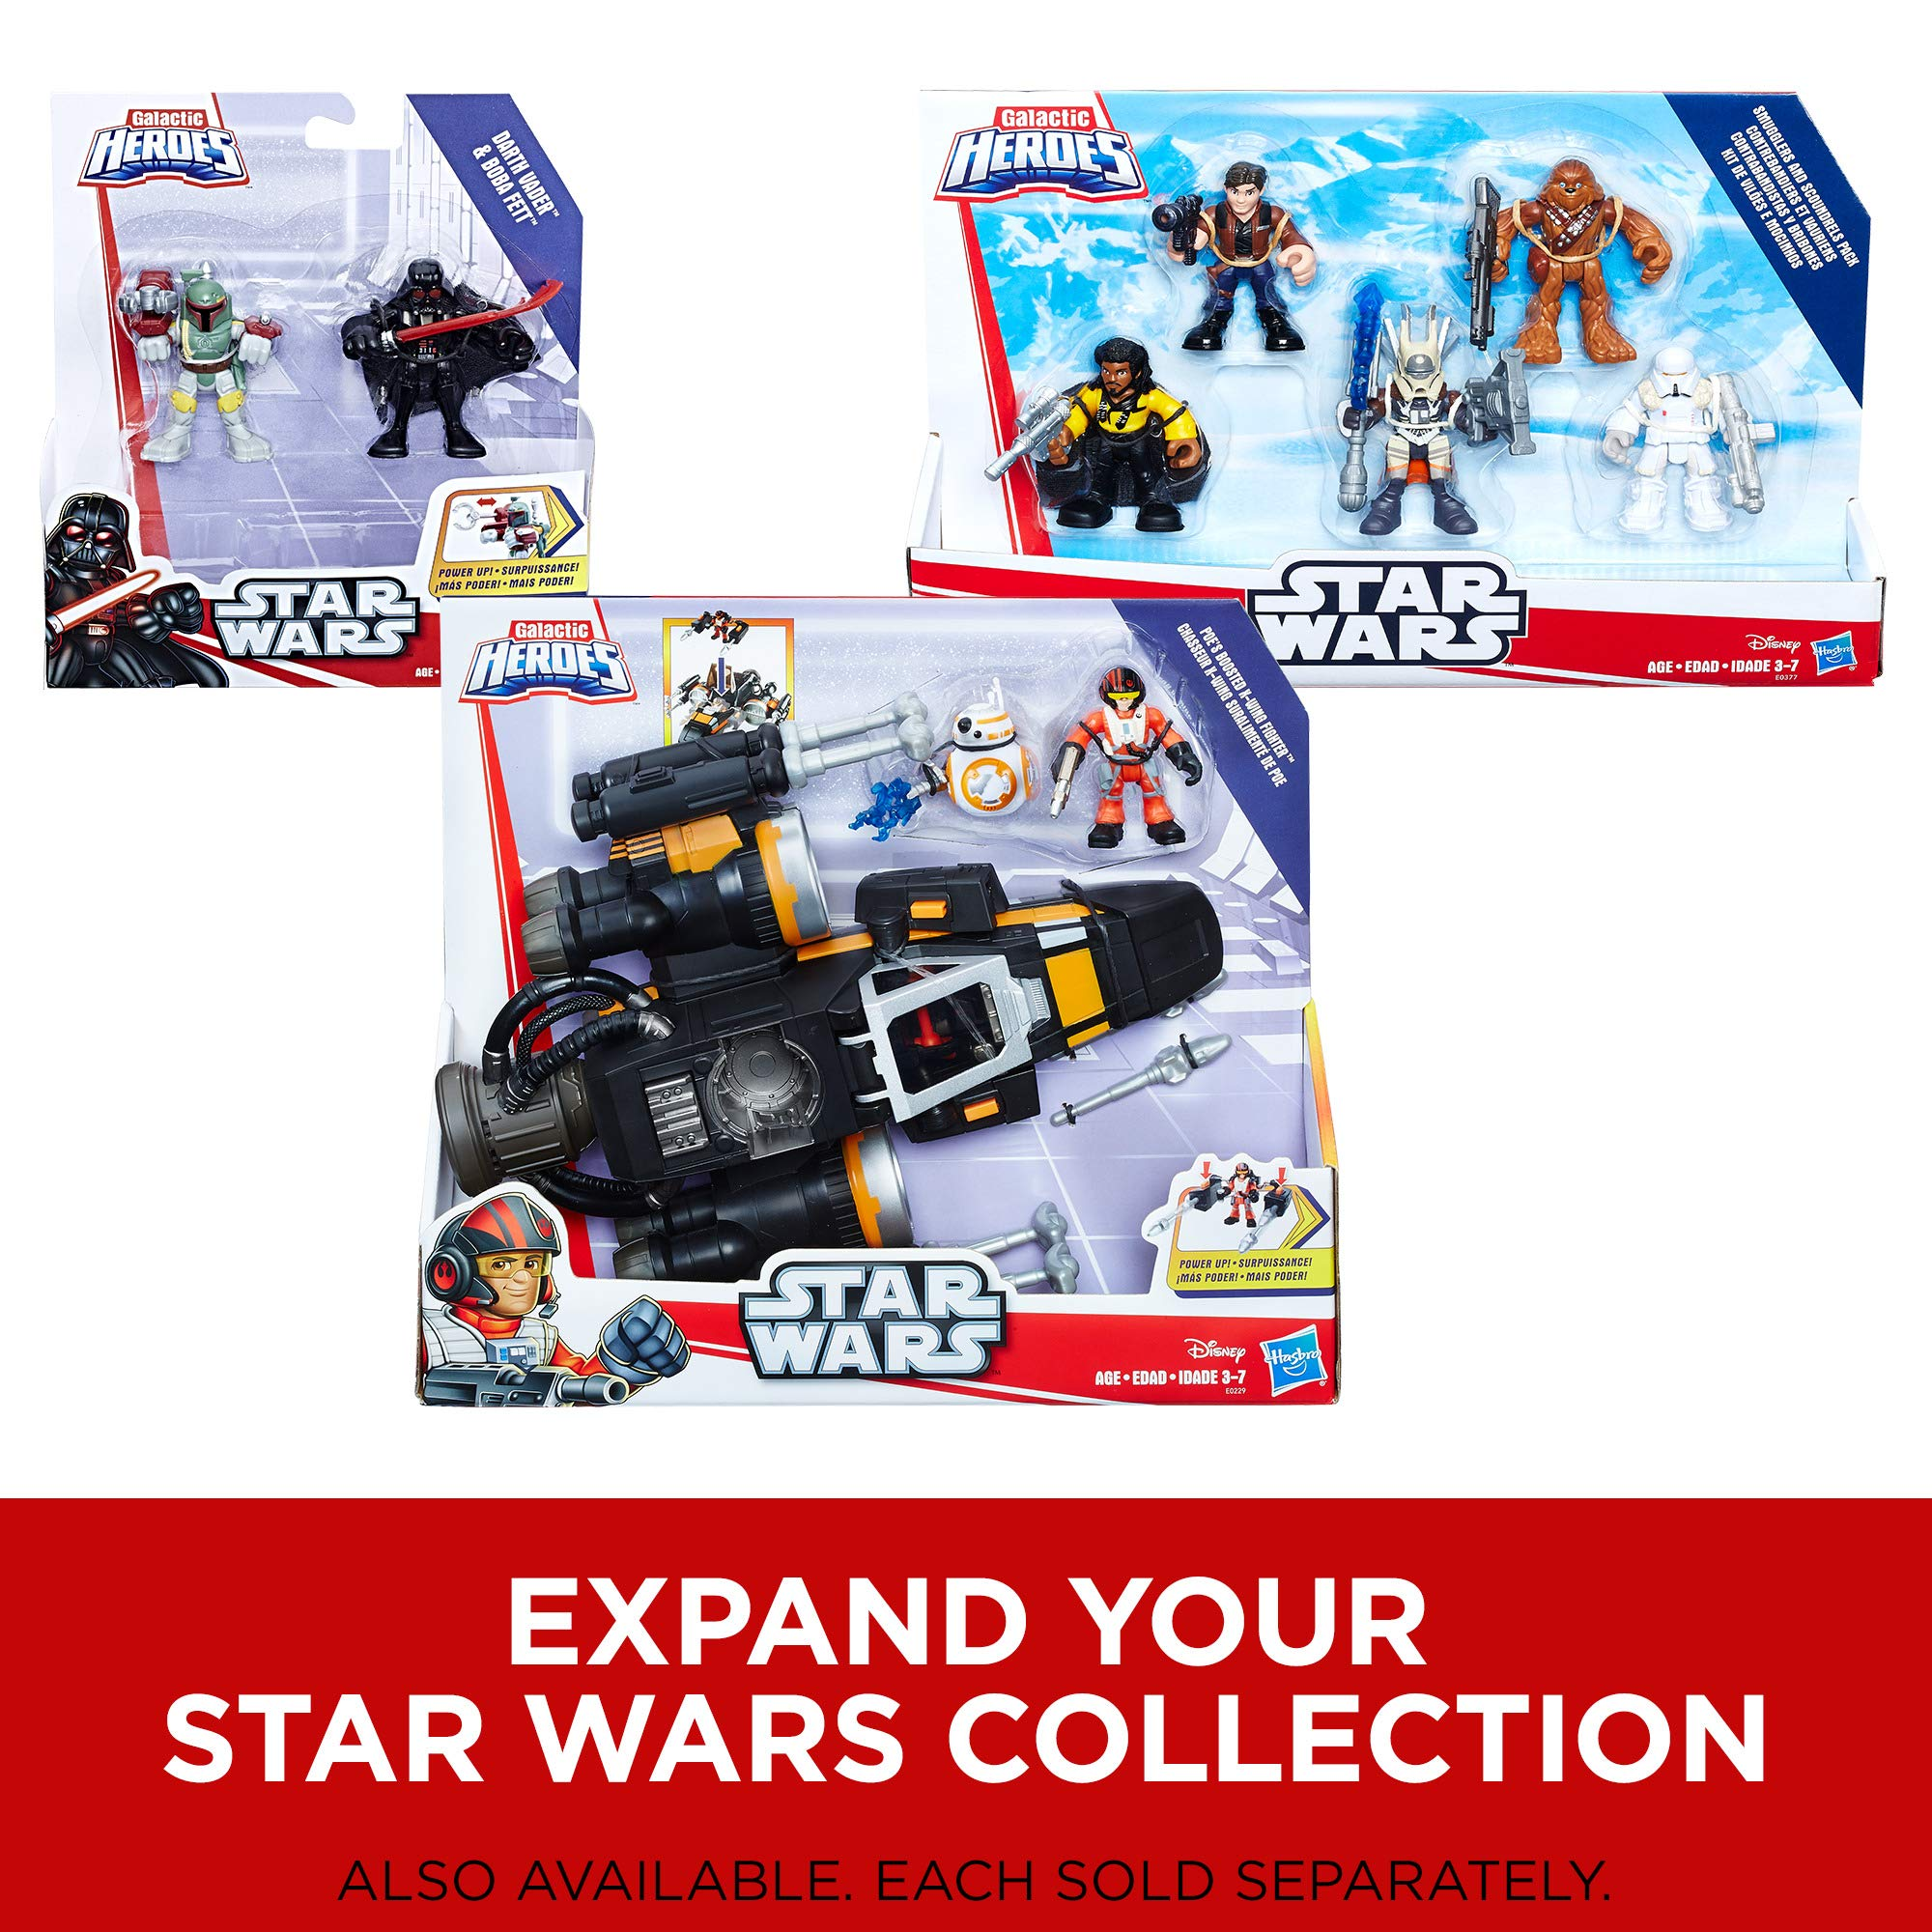 Star Wars Galactic Heroes 2-In-1 Millennium Falcon Vehicle Playset, Chewbacca, R2-D2 2.5-Inch Action Figures, Lights and Sounds, Toys for Kids Ages 3 and Up by Playskool (Image #6)